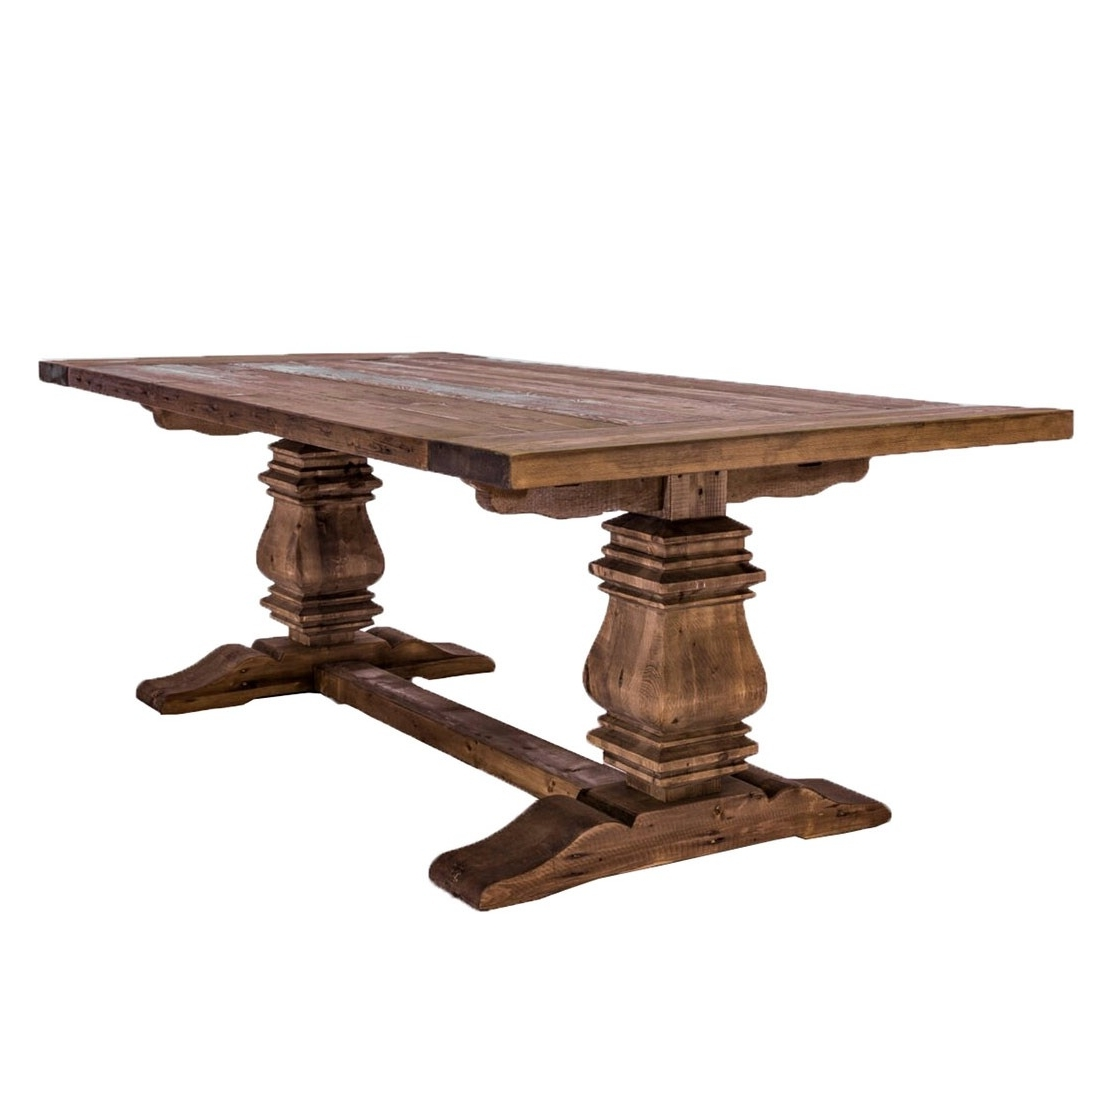 Amos Extension Dining Tables For Most Up To Date Kingswood Harvest Dining Table » Glamour & Woods (View 4 of 25)